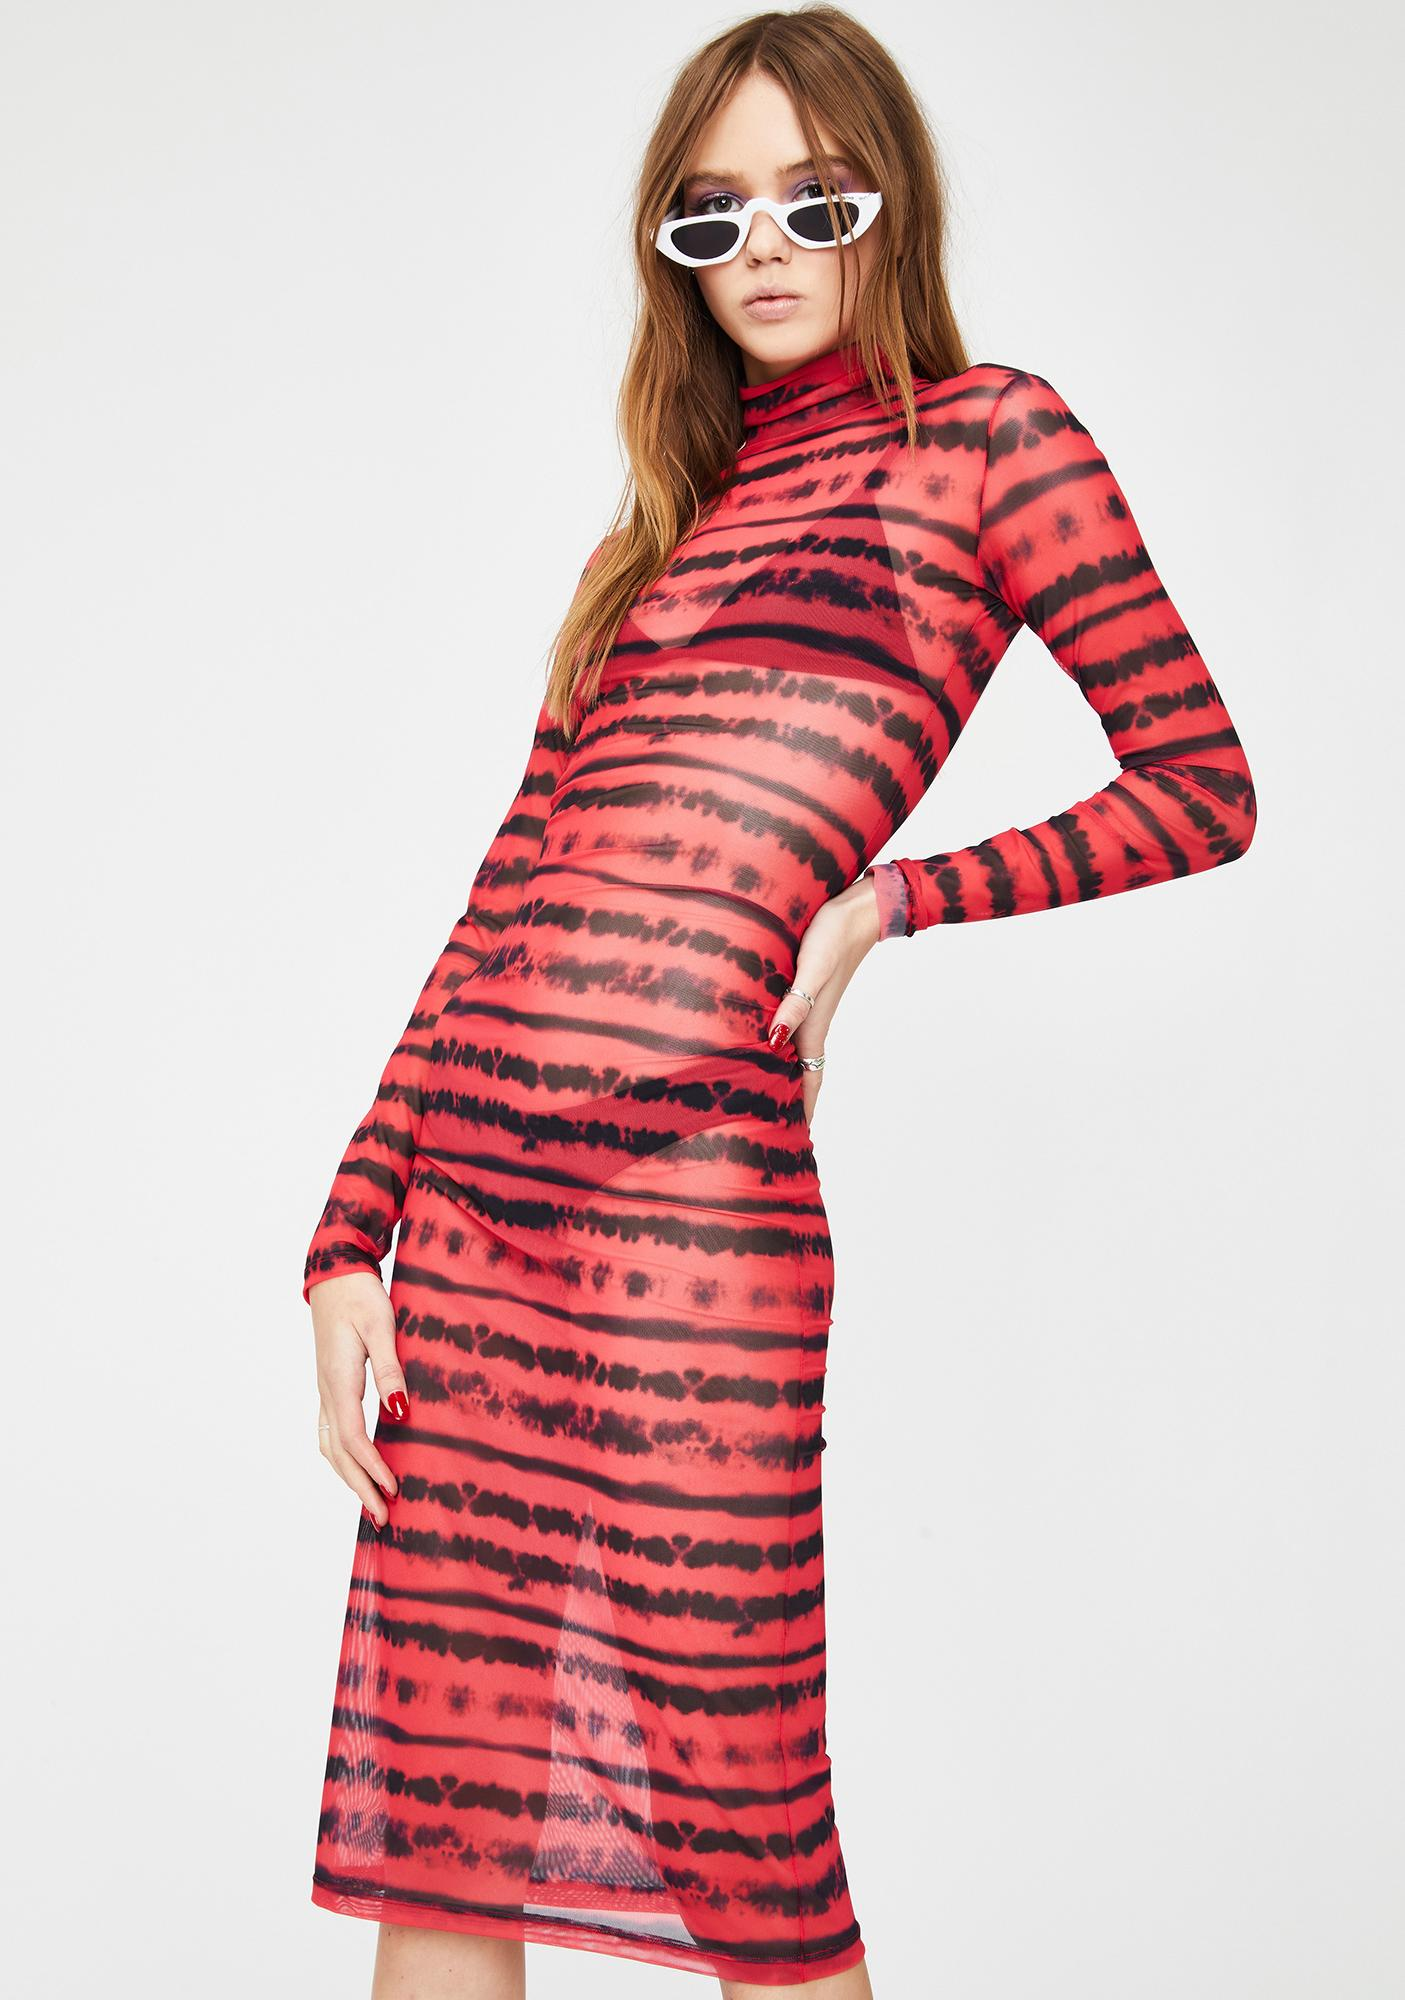 Kiki Riki Gimme A Beat Mesh Midi Dress